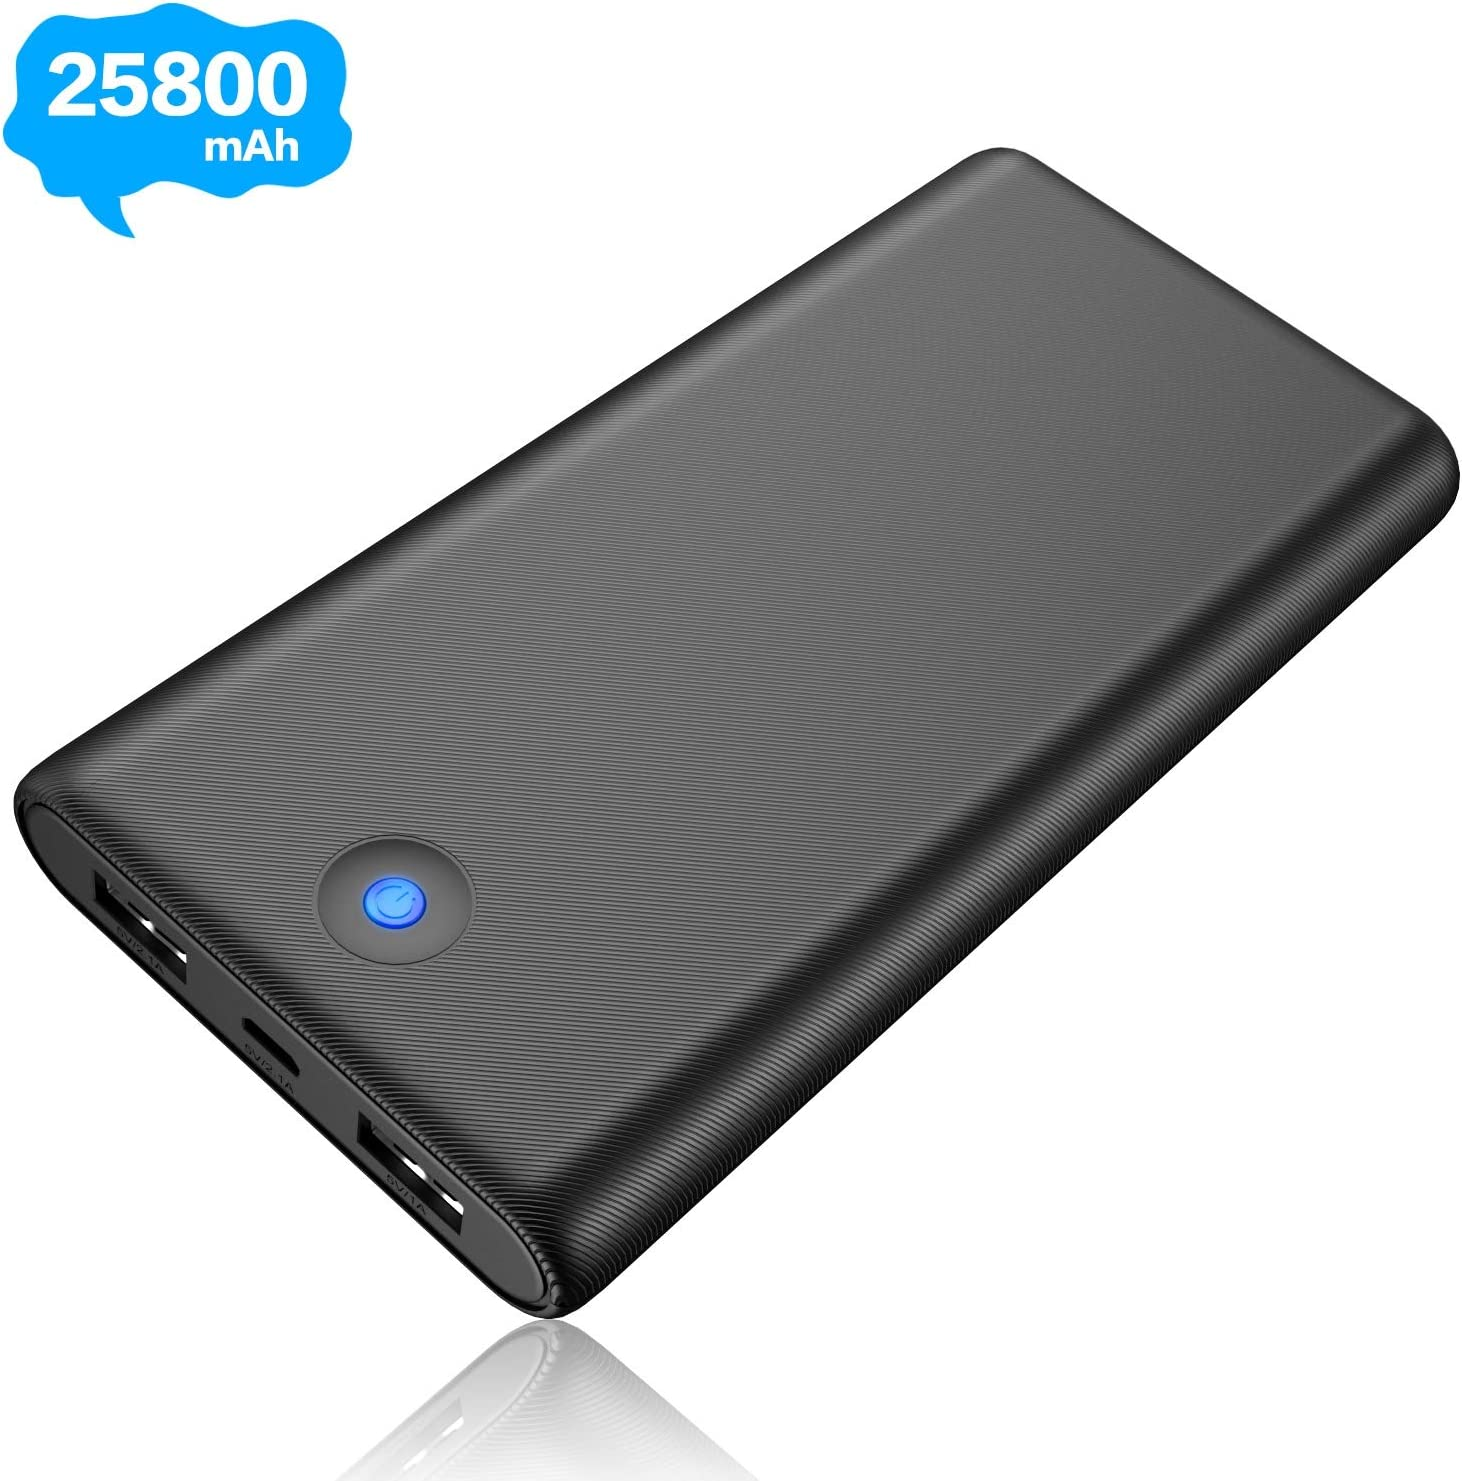 Portable Charger Power Bank 25800mAh [2019 Newest] Ultra High Capacity Phone Charger with Color LED Indicator, 2 USB Output Lighter Weight External Battery Pack for Smart Phone Android Tablet and More